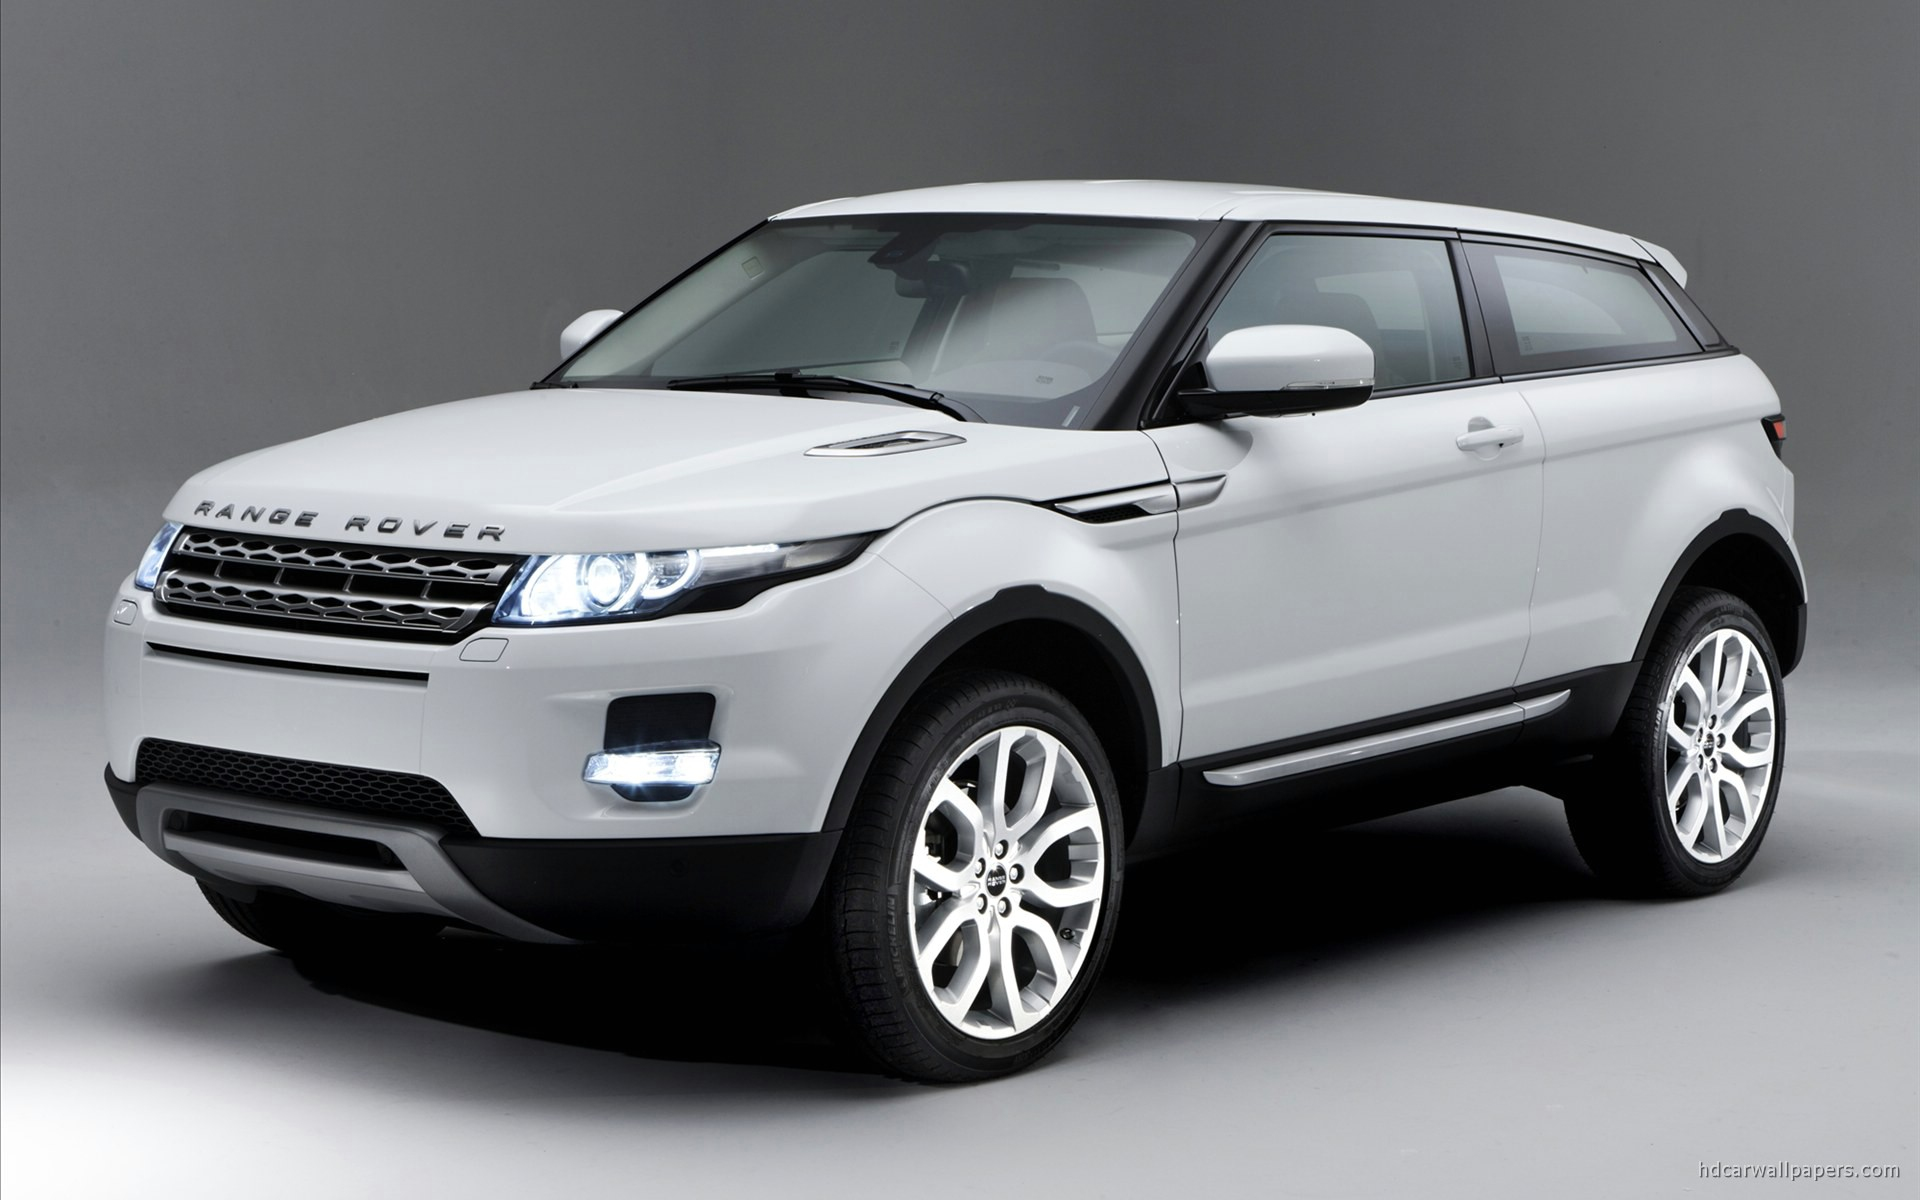 2011 range rover evoque 5 wallpaper hd car wallpapers. Black Bedroom Furniture Sets. Home Design Ideas